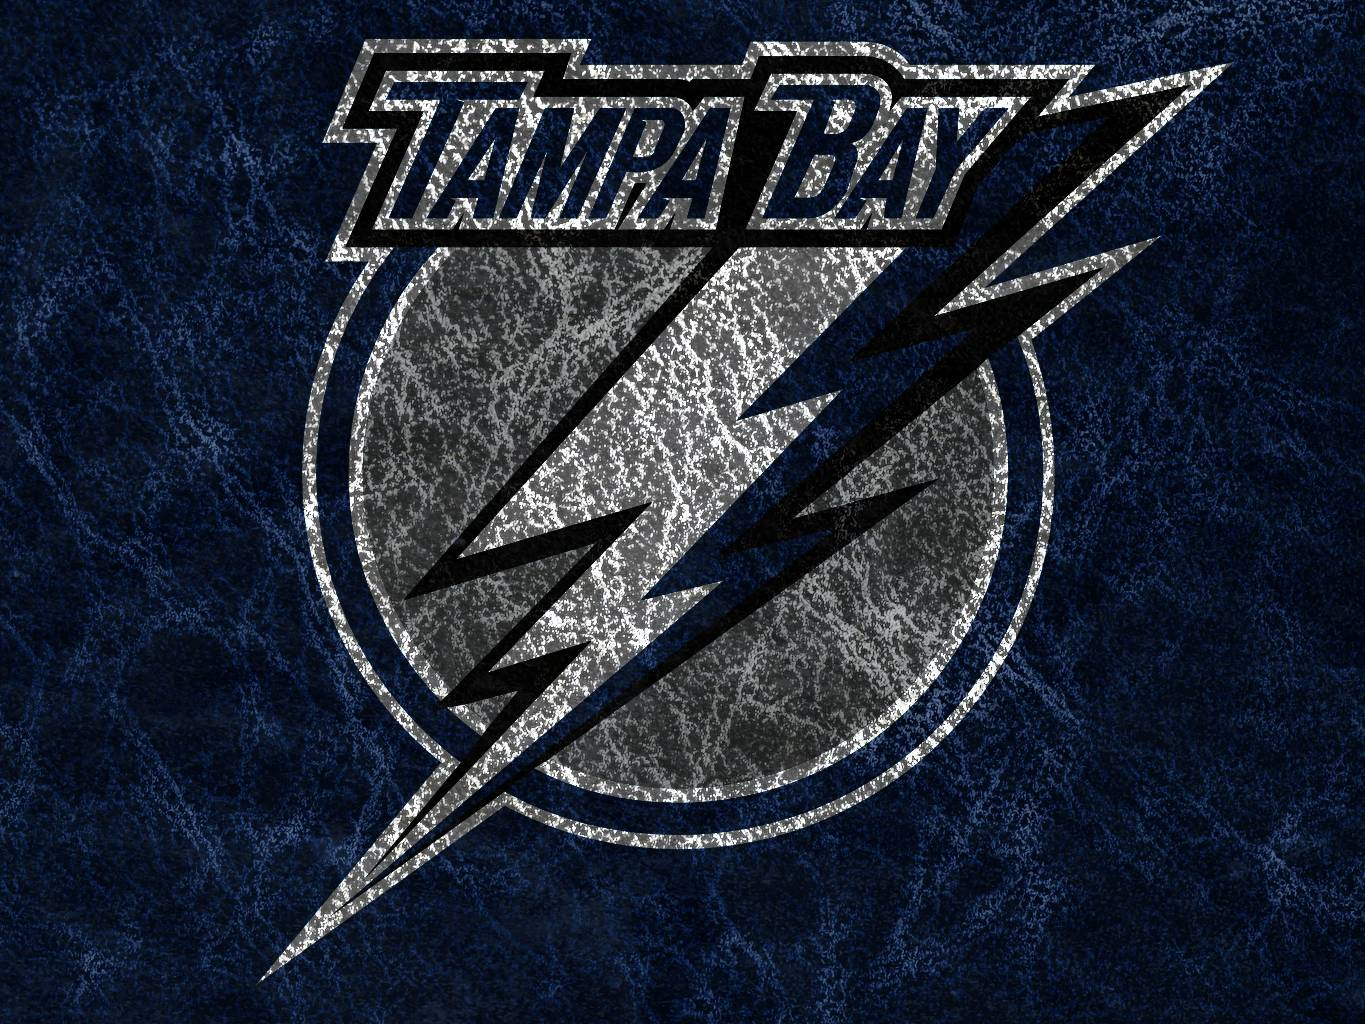 Tampa Bay Lightning Wallpapers 1365x1024